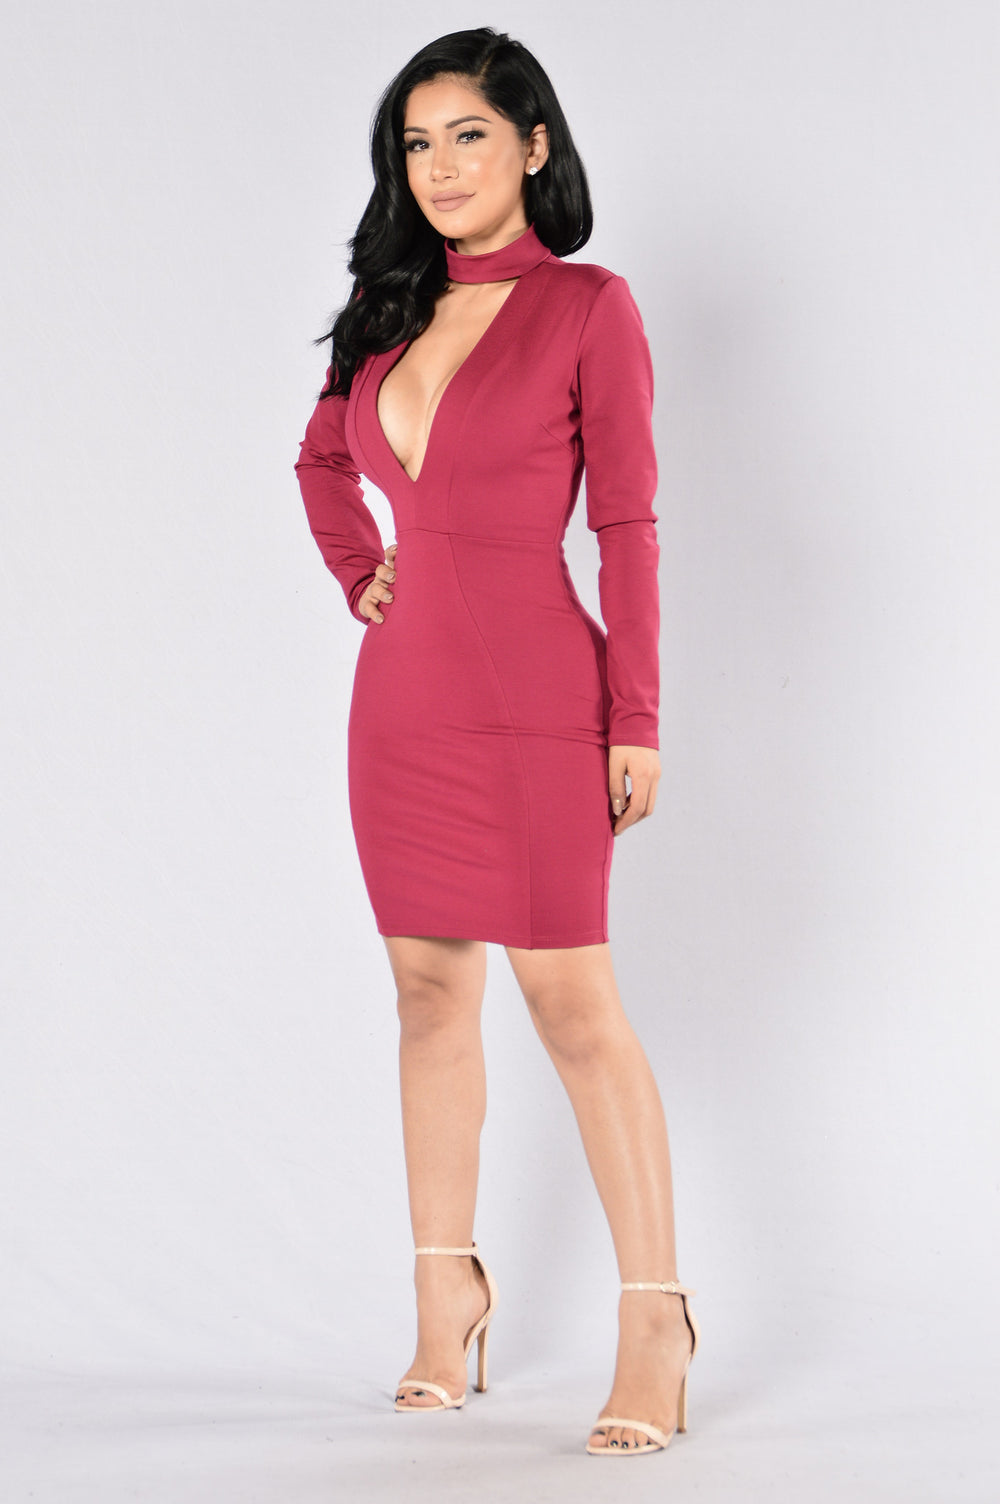 Good Intentions Dress - Wine